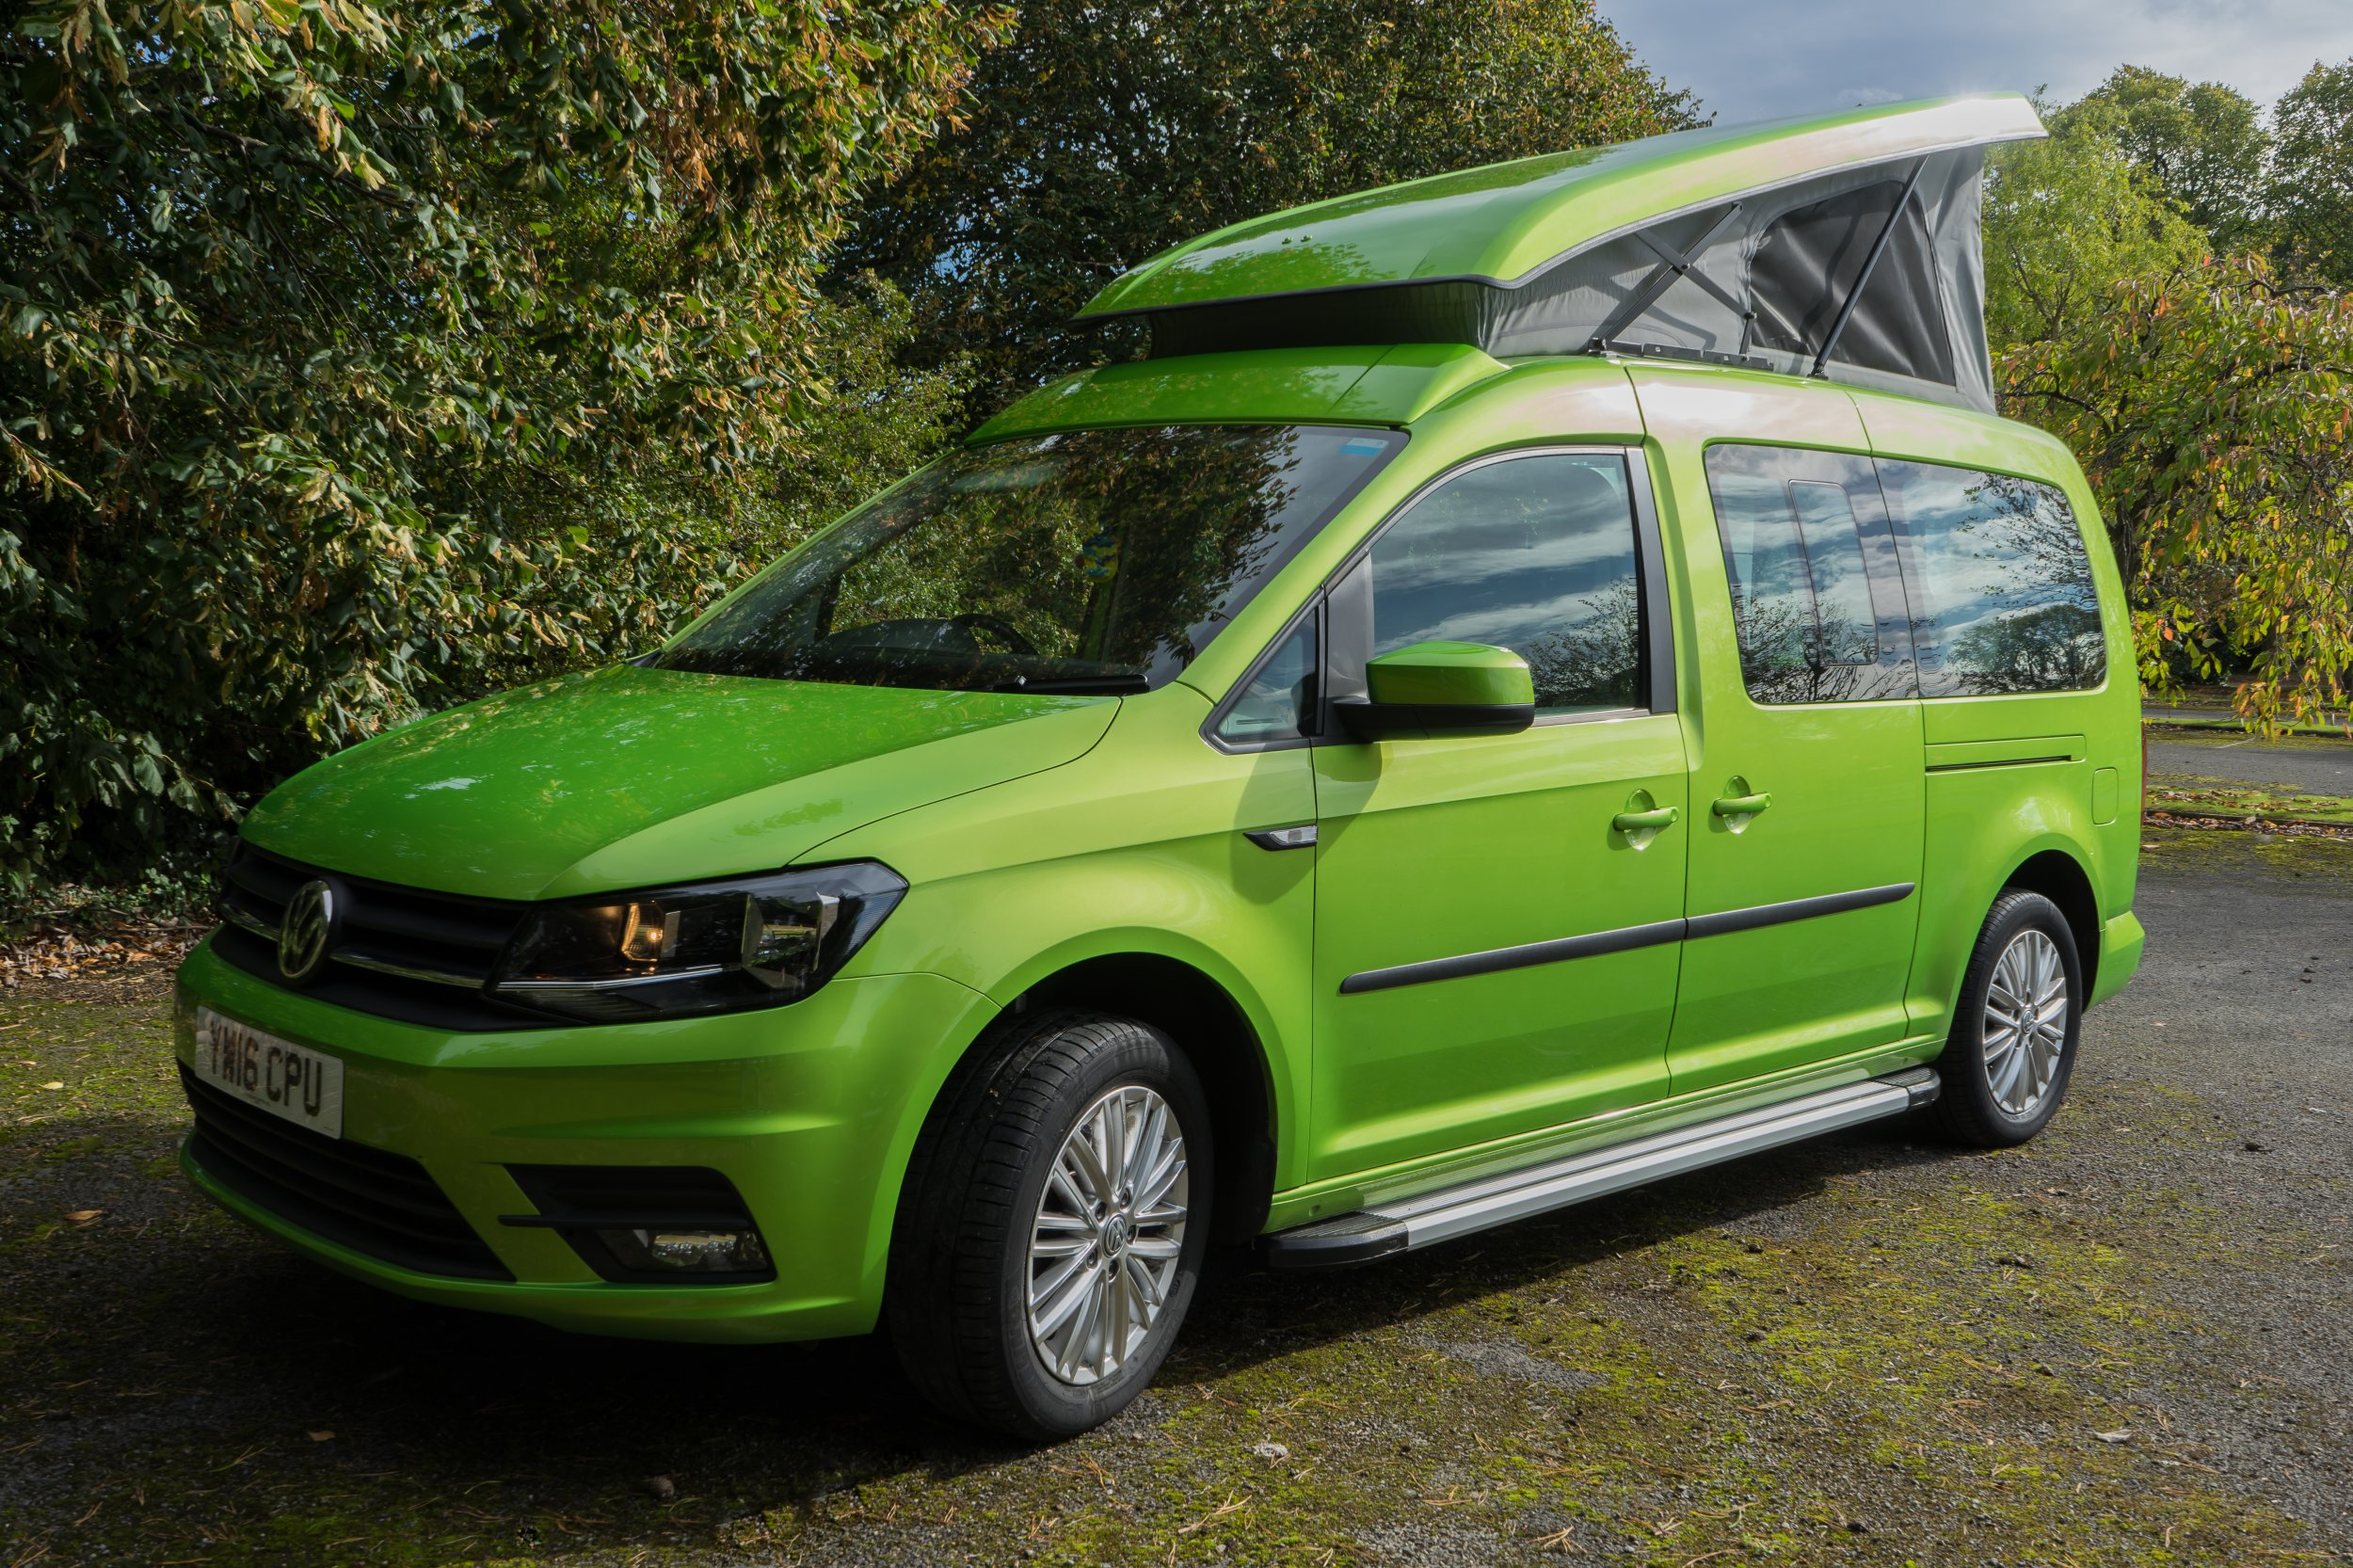 vw caddy maxi key camper conversions. Black Bedroom Furniture Sets. Home Design Ideas